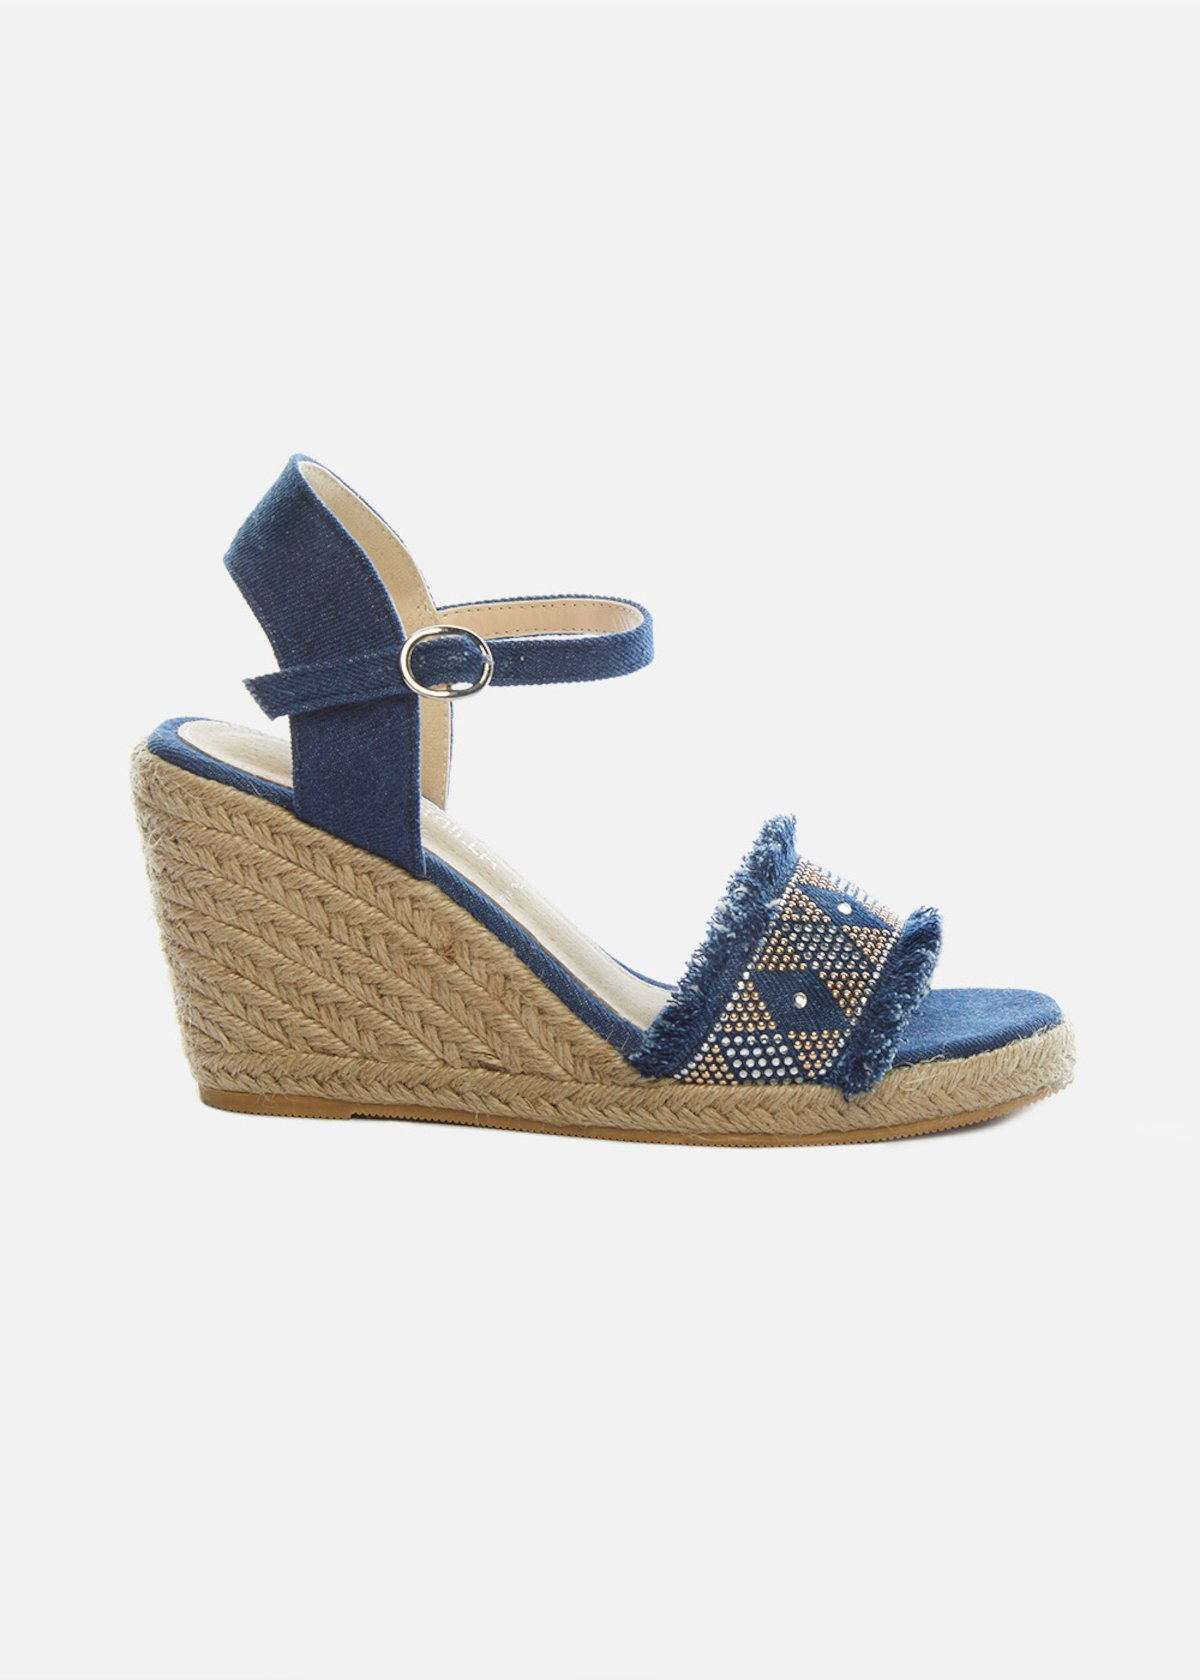 Sandali Sashar con zeppa in paglia dettagli crystal - Medium Denim